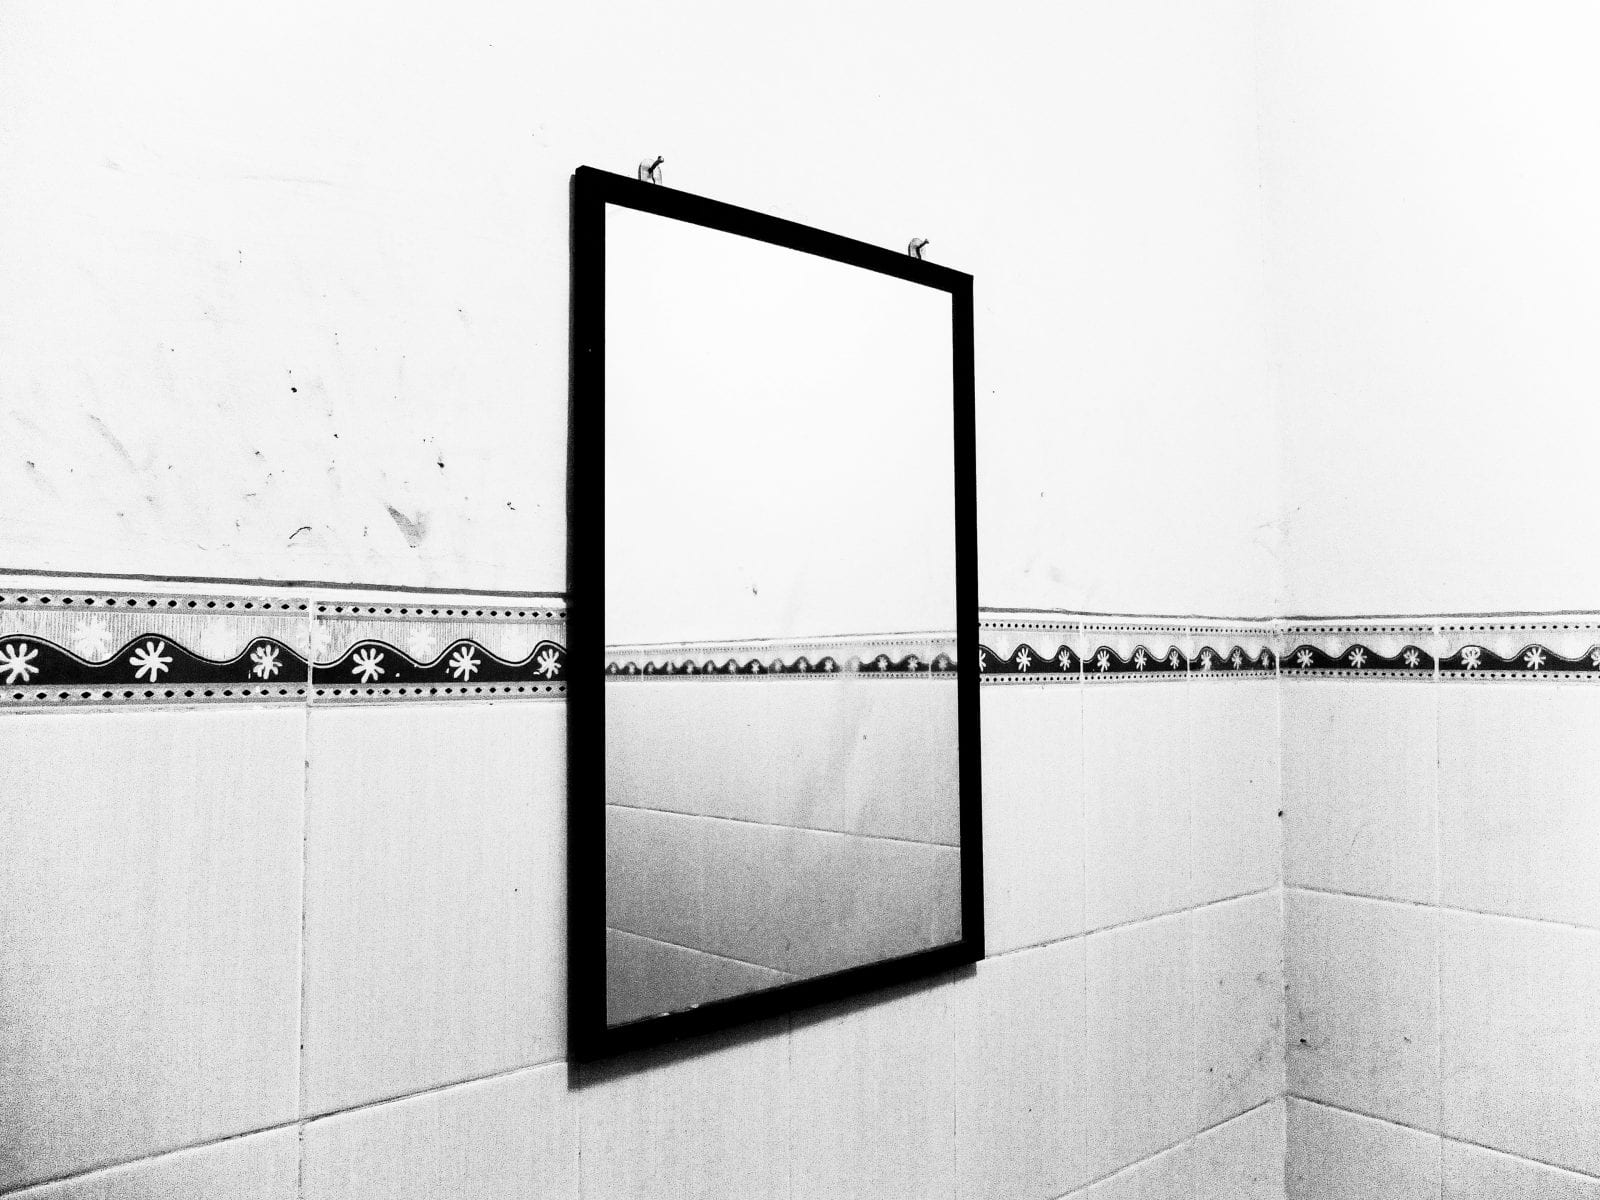 mirror black & white, contrast photography by Aji Susanto Anom